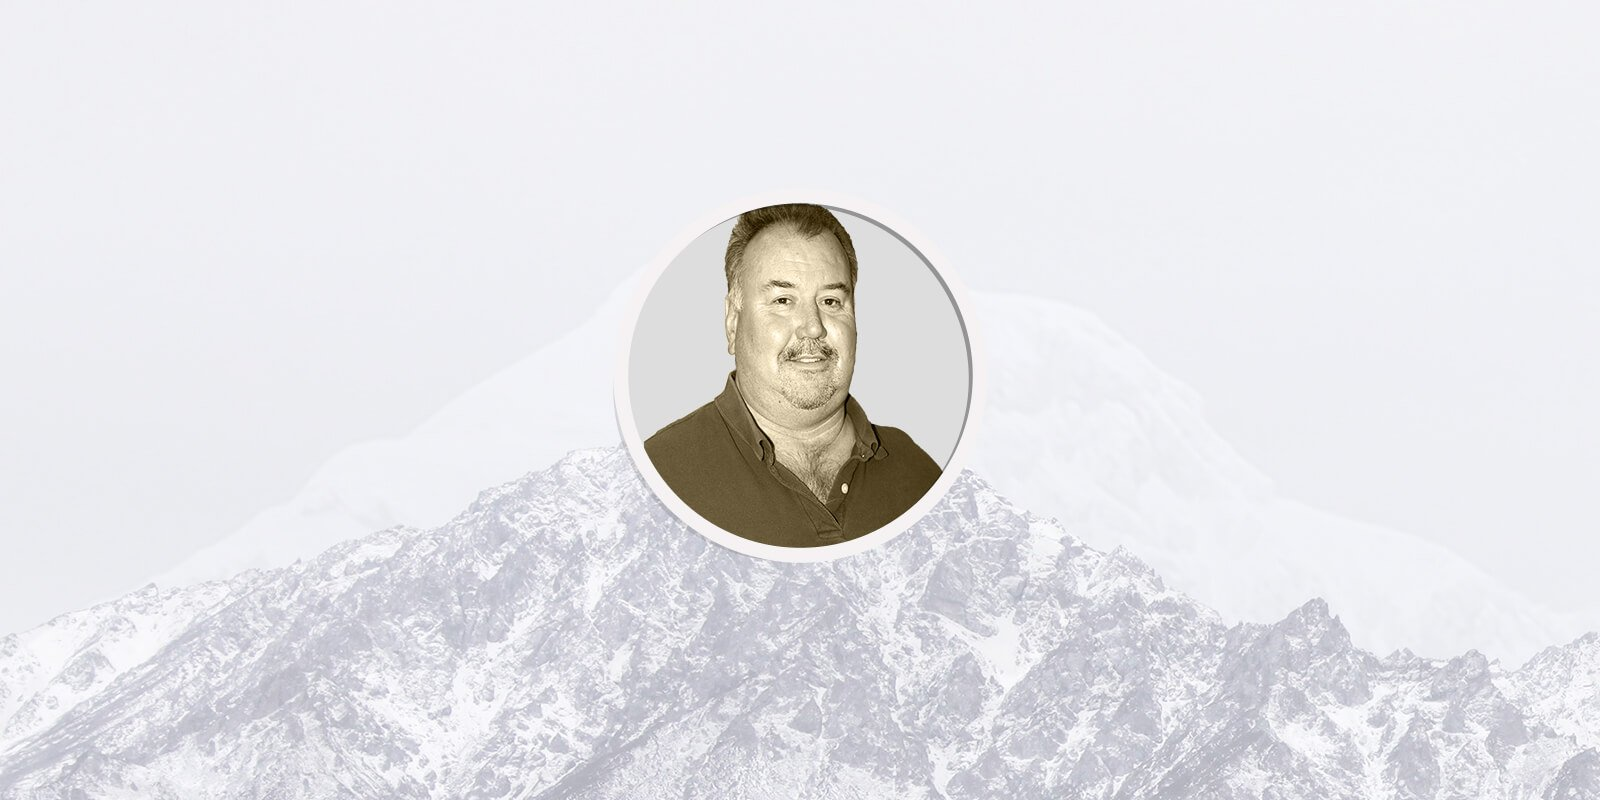 Real estate networking is a huge a part of successful buy-n-hold landlord for Passive Income, Rehabbing, wholesaling and hard money lending. REIA connects investors with like-minded people like Mike Paschall on the path to financial independence in a safe, caring environment of learning, networking and mentor-coaching.